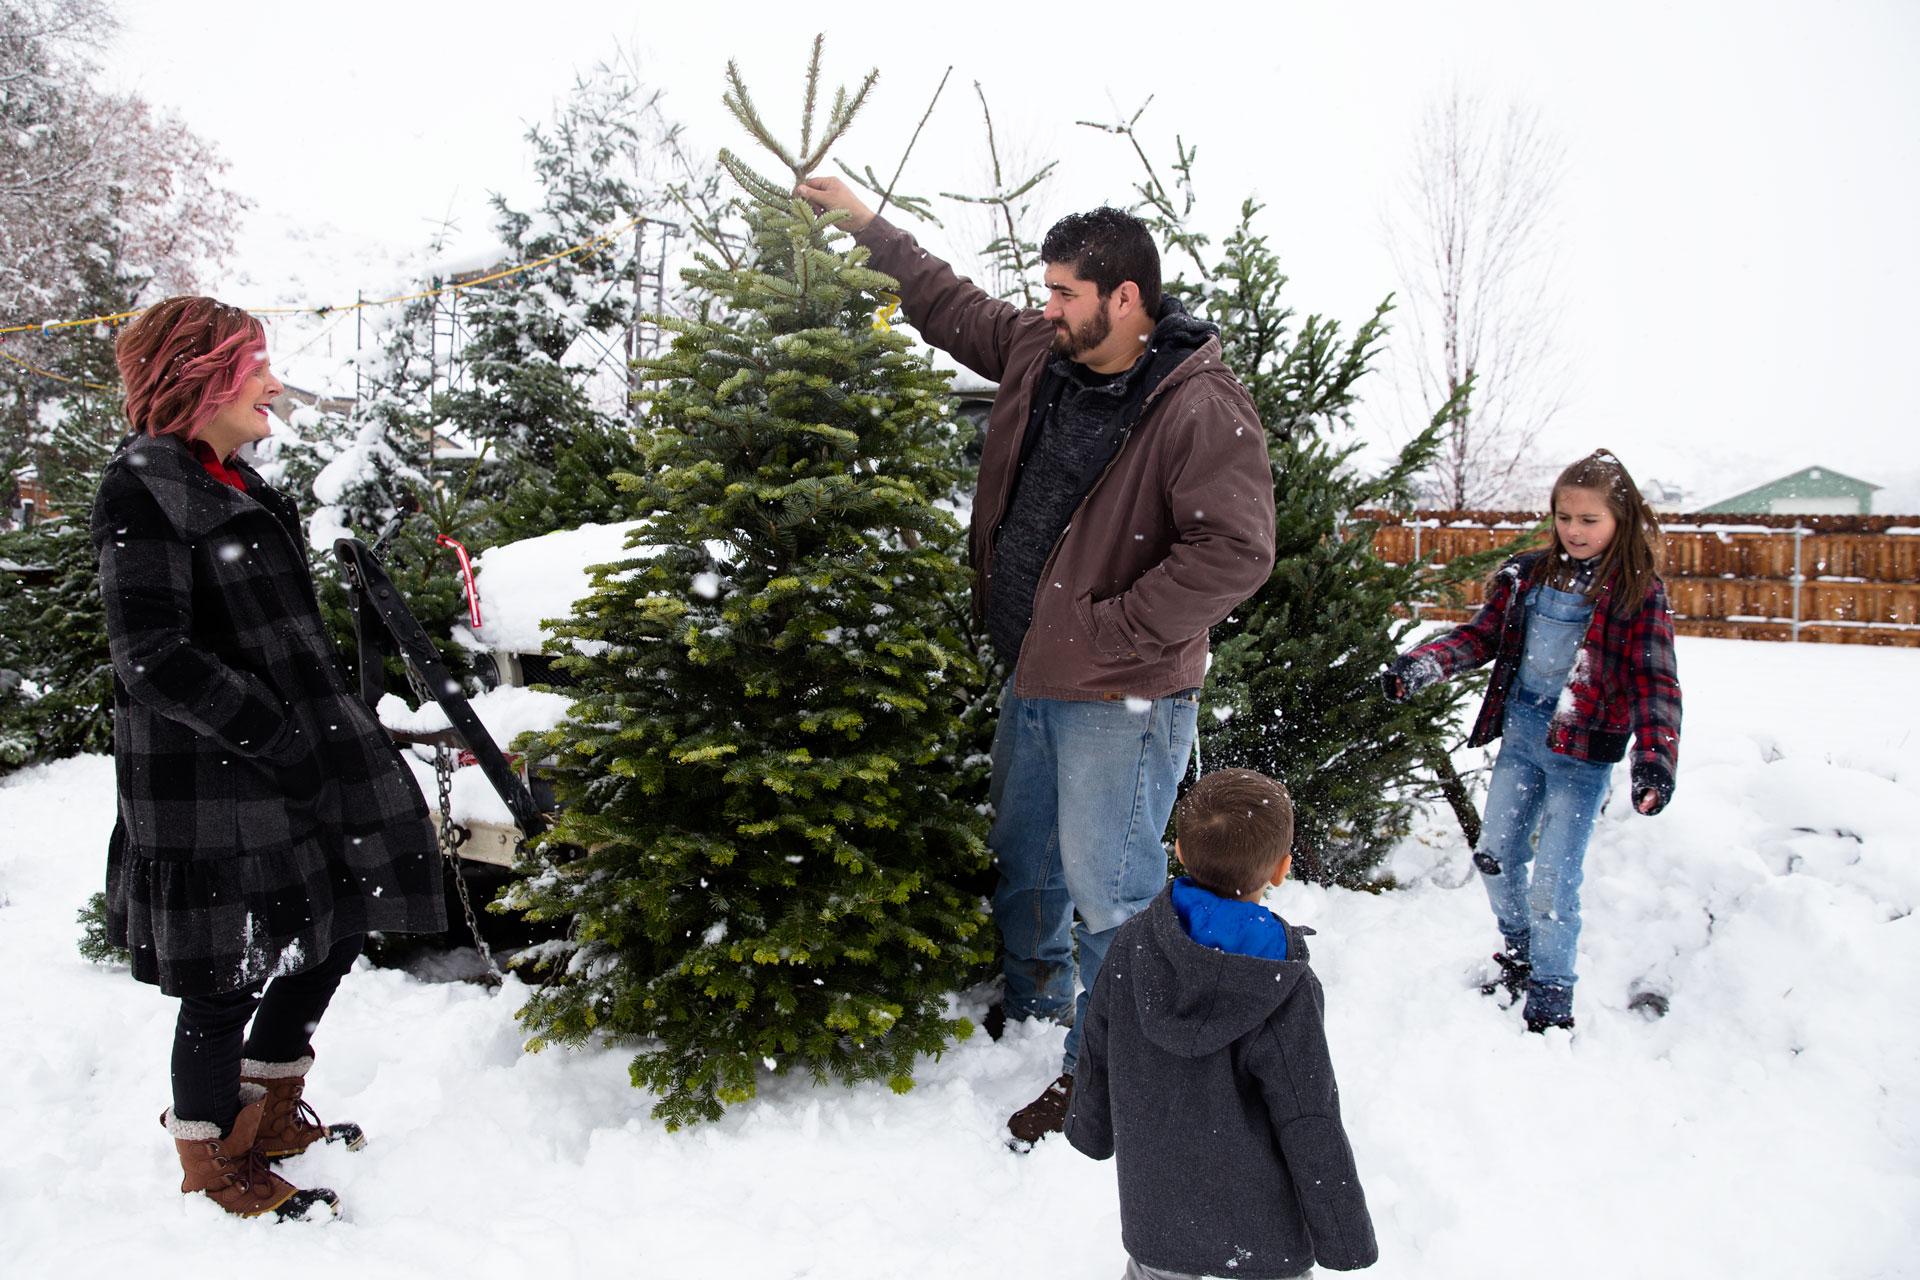 Dan holding up Christmas Tree for all to see at the tree lot